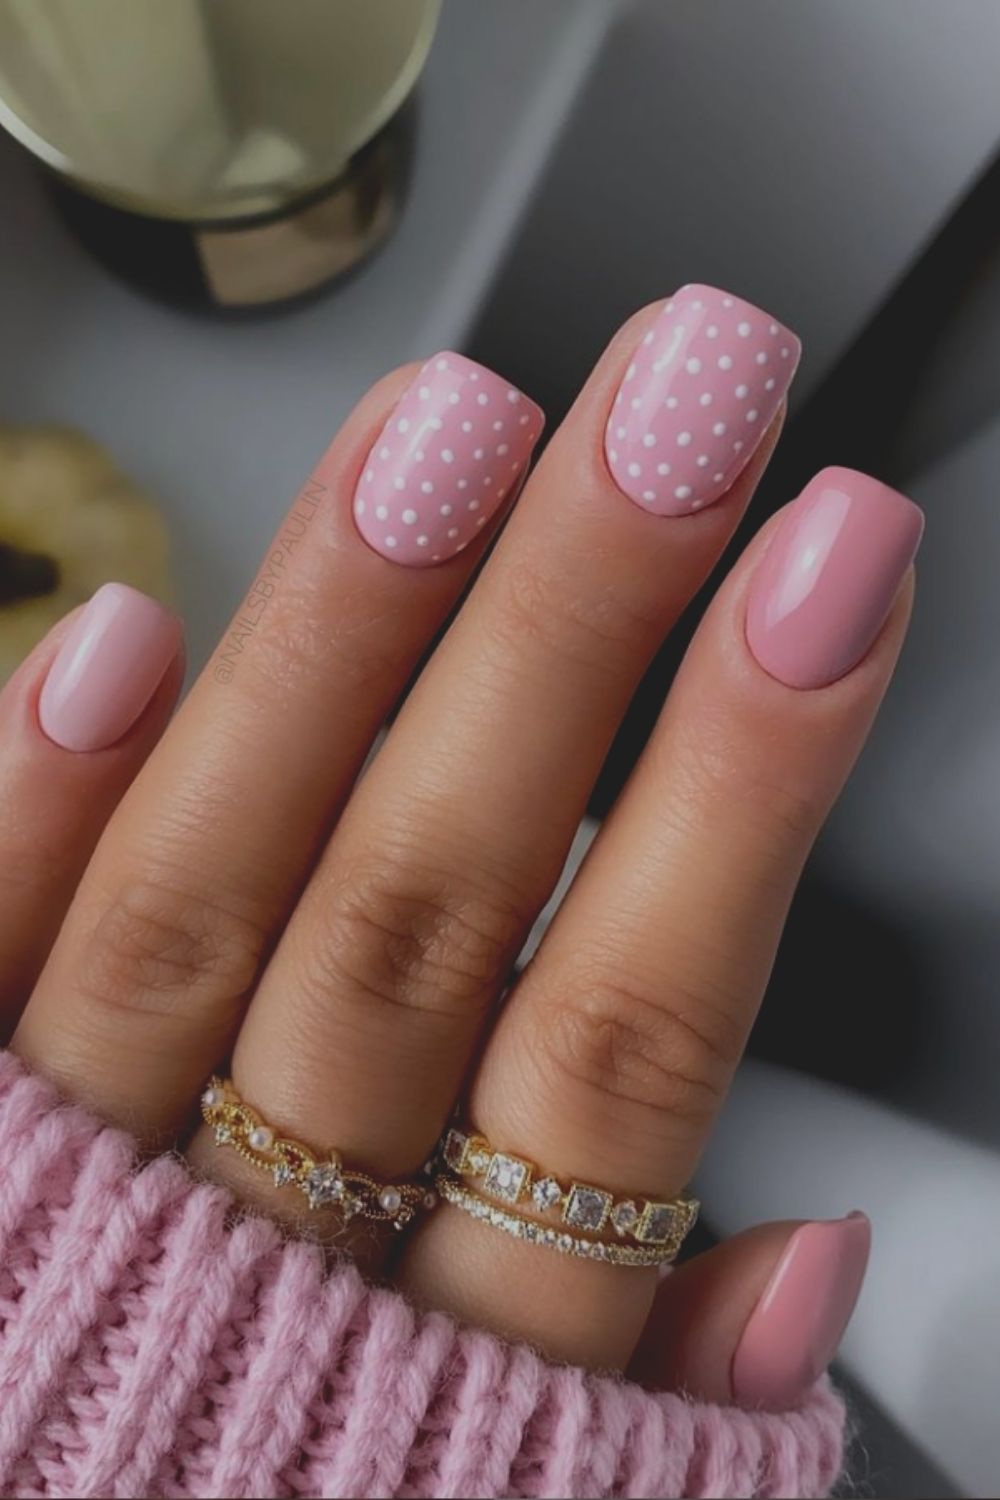 Cute pink and white short acrylic nails art